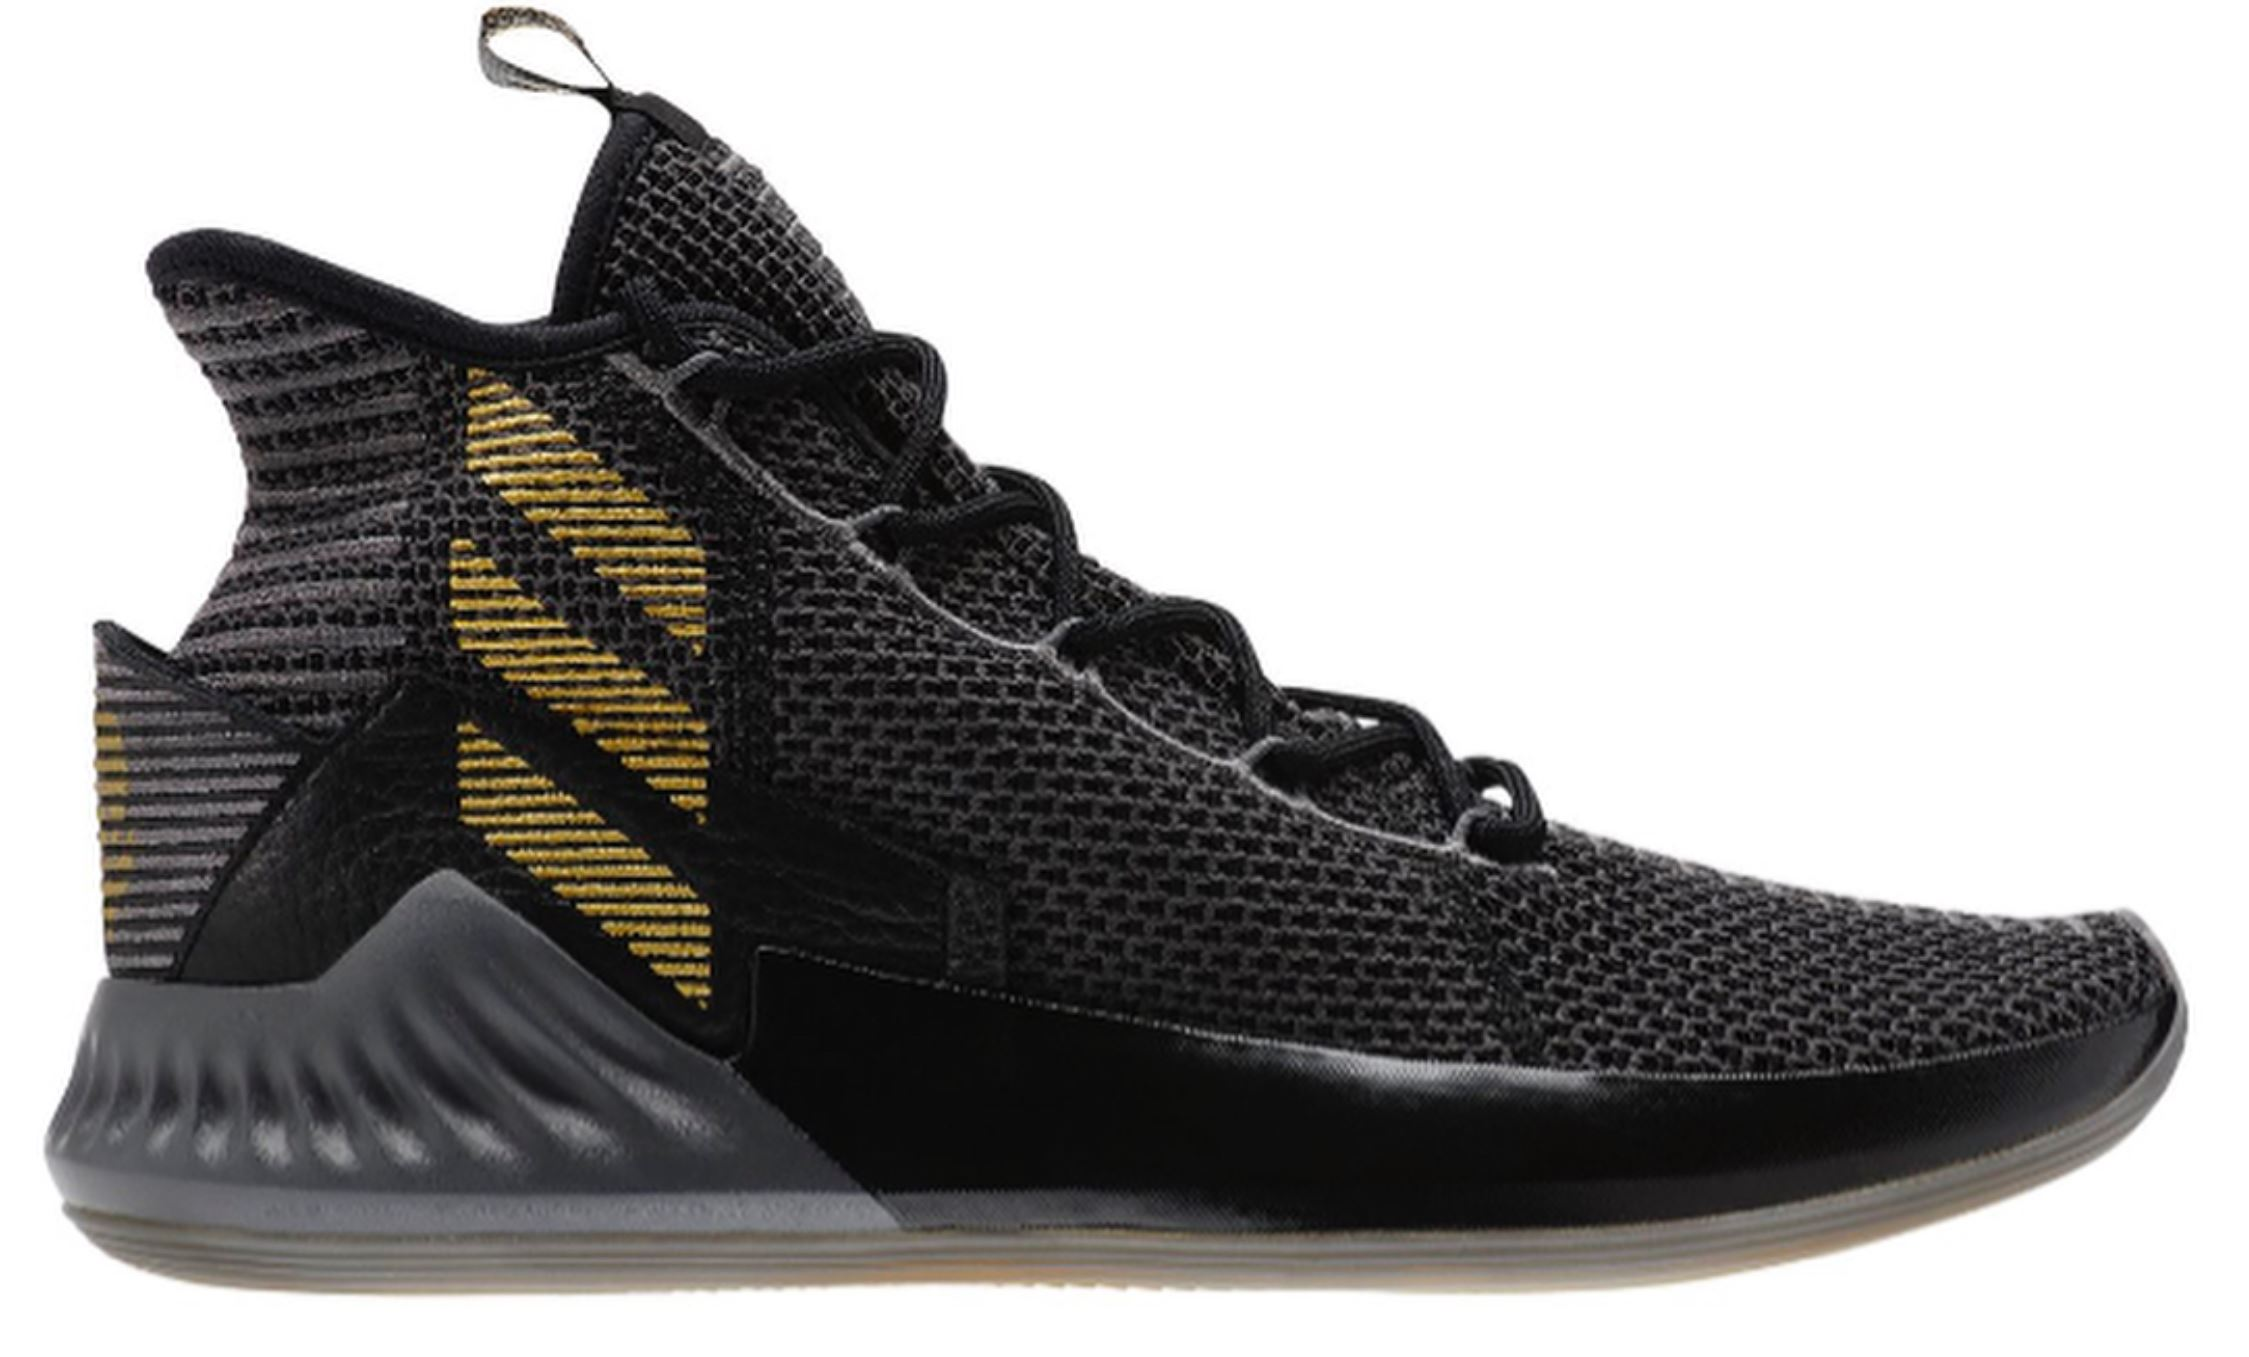 adidas d rose 3 release date